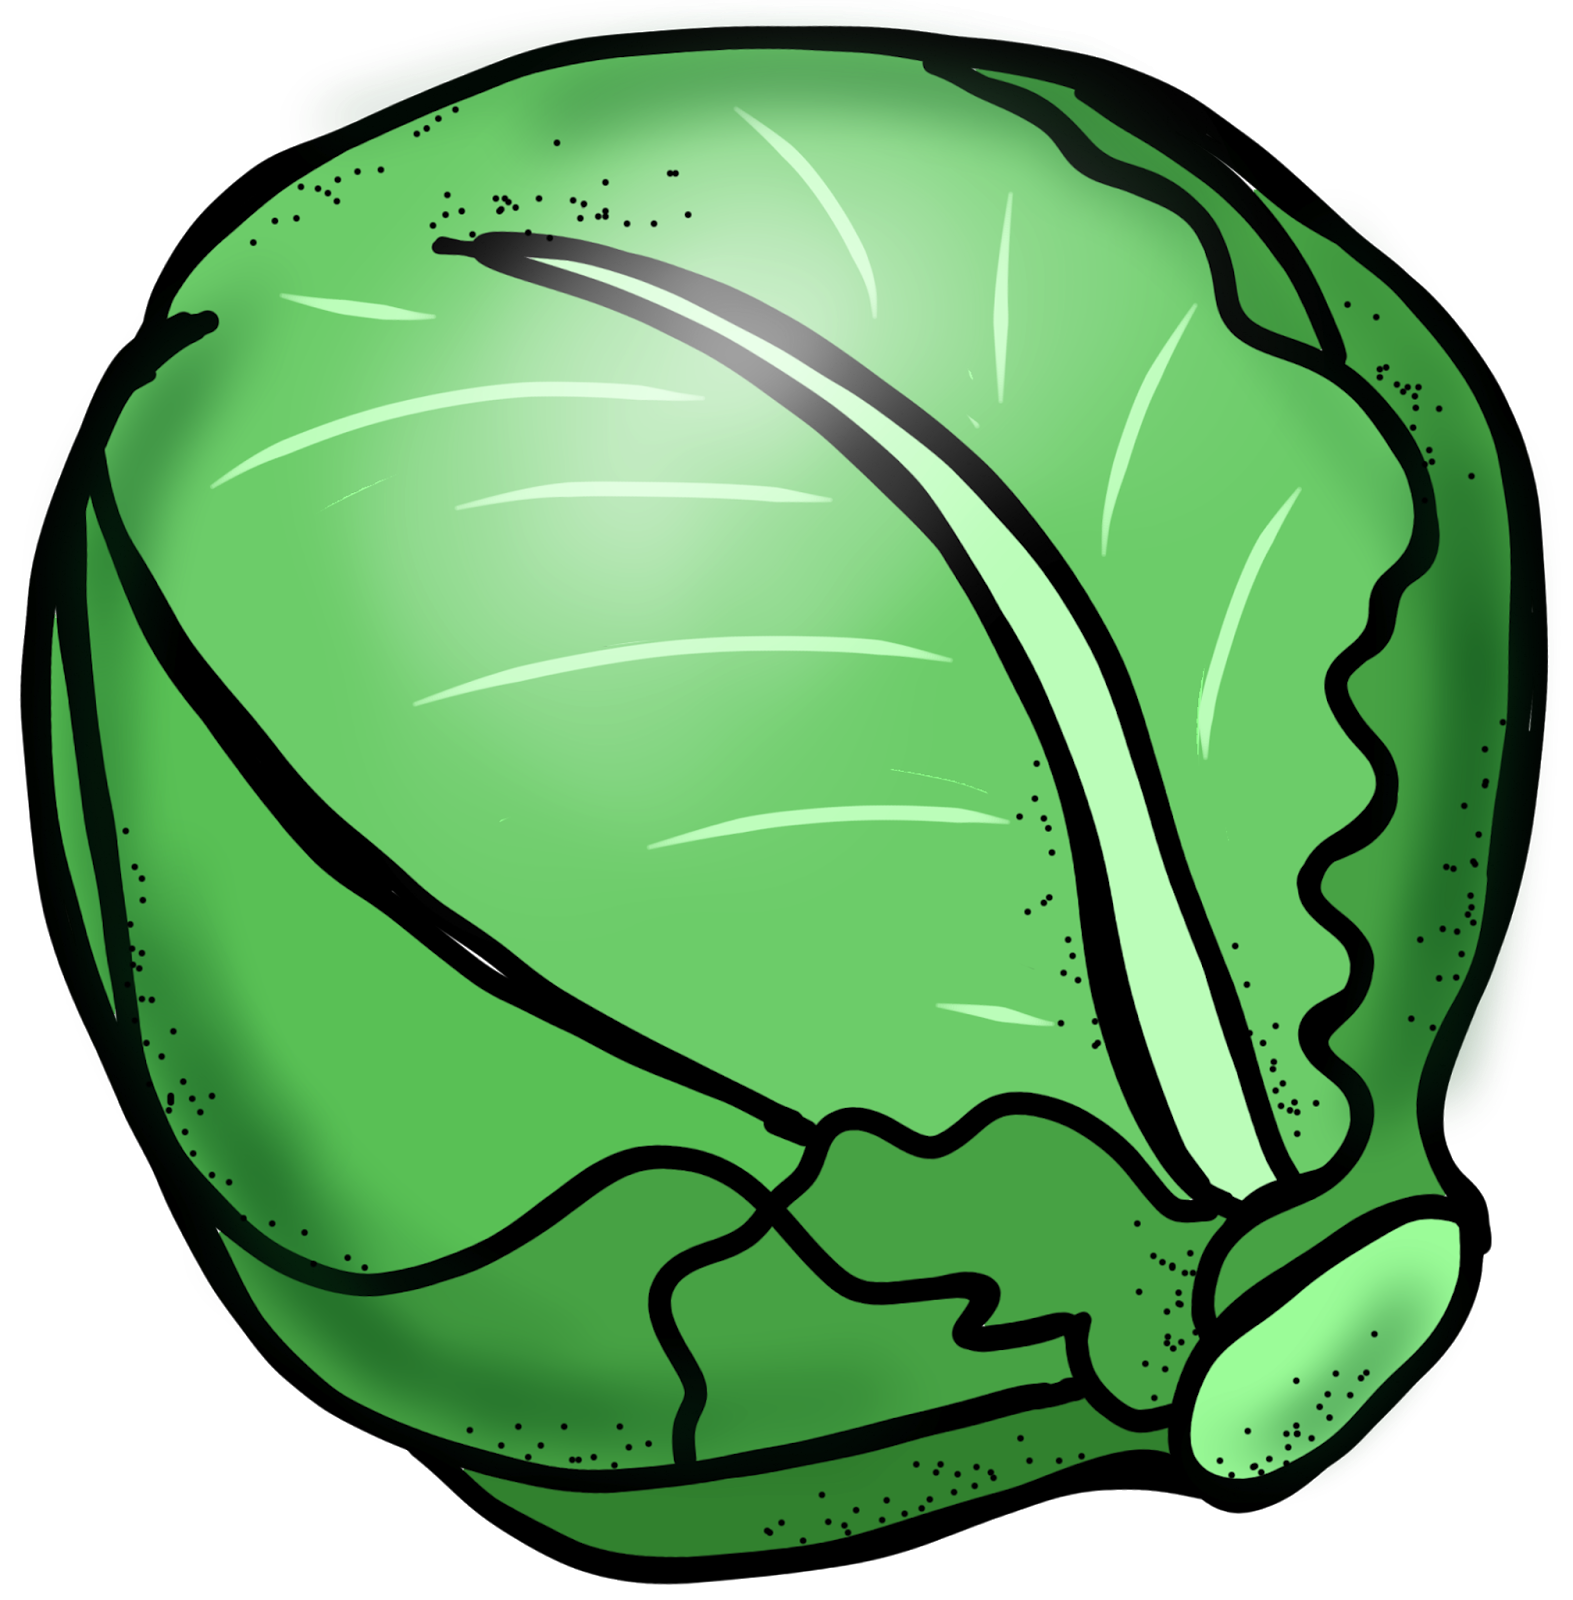 Cabbage clipart vegetable #5